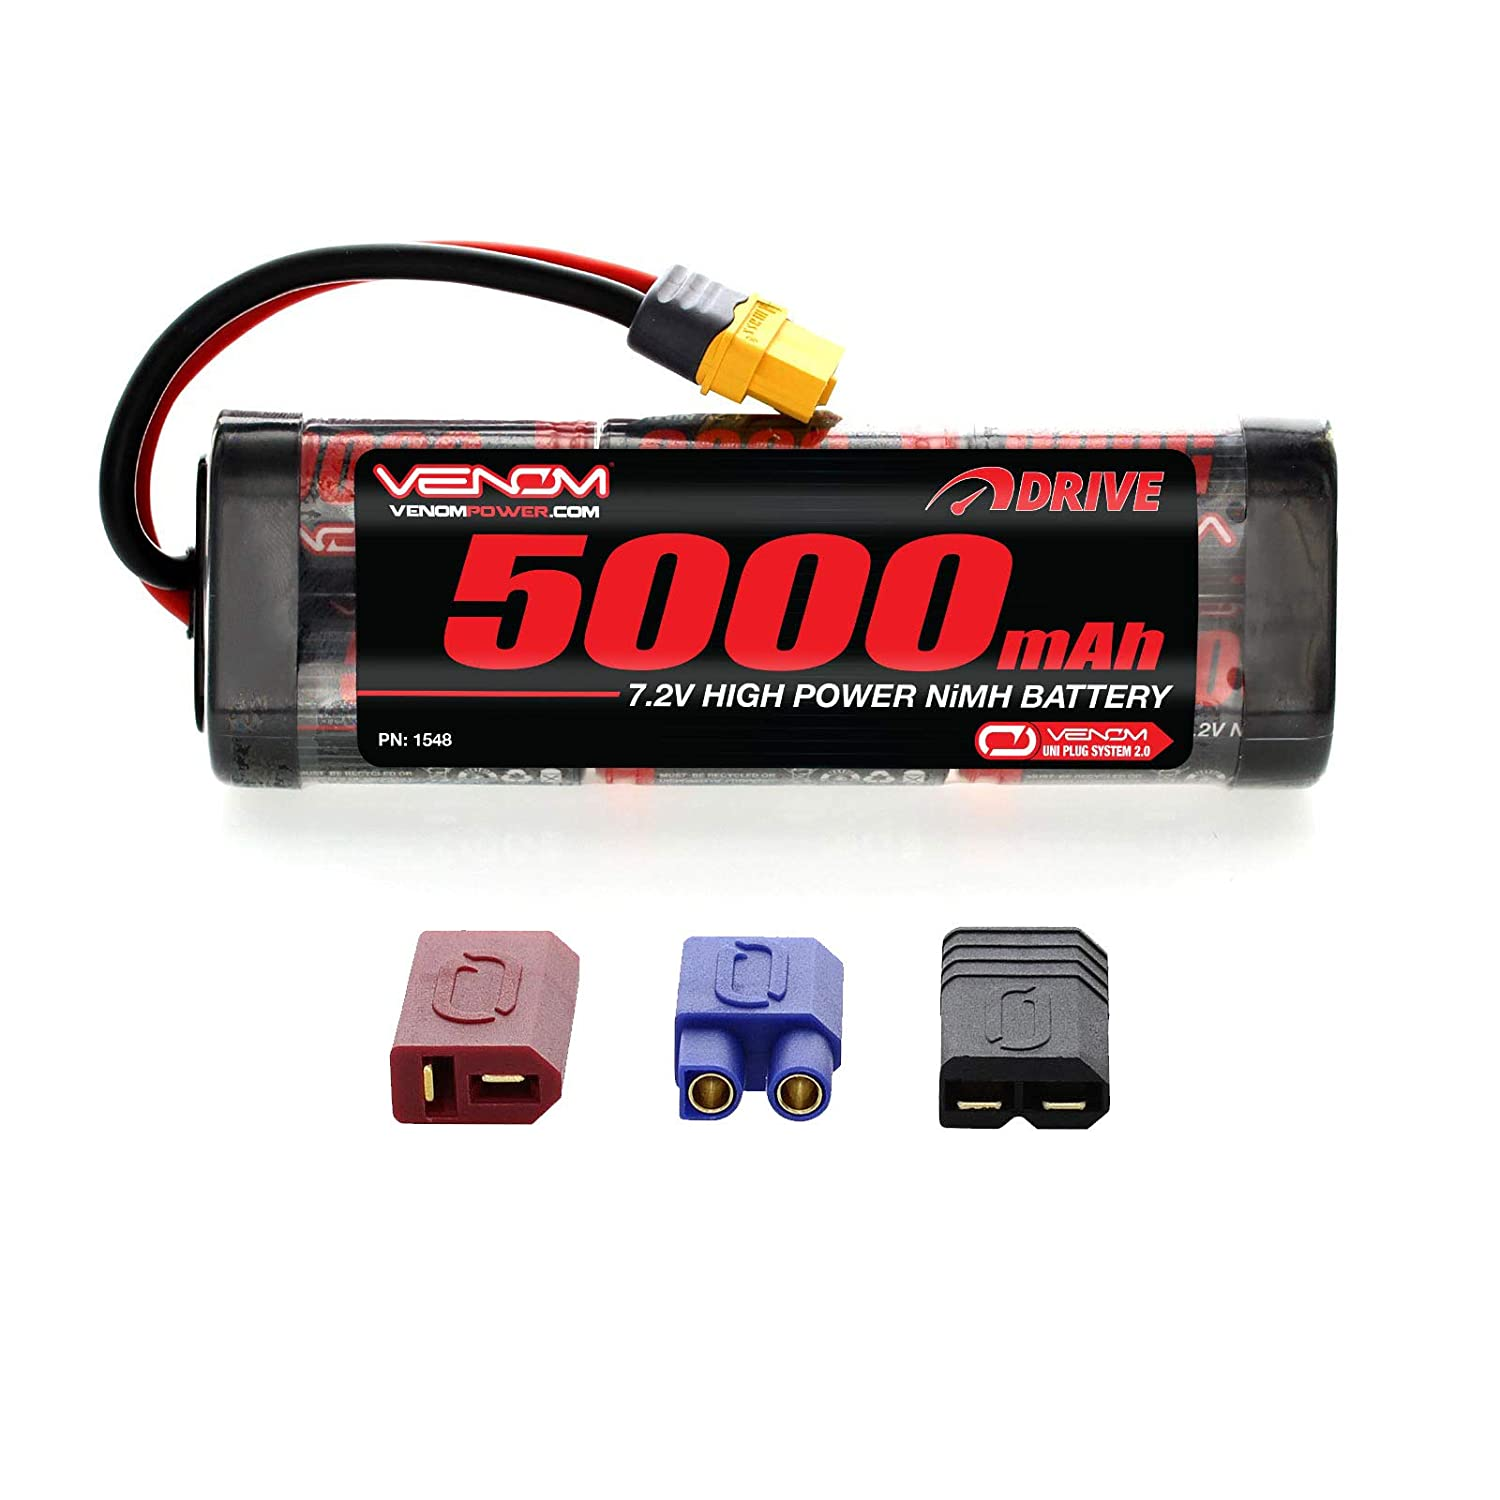 Venom 7.2V 5000mAh 6-Cell NiMH Battery with Universal Plug 2.0 (Traxxas / Deans / EC3)